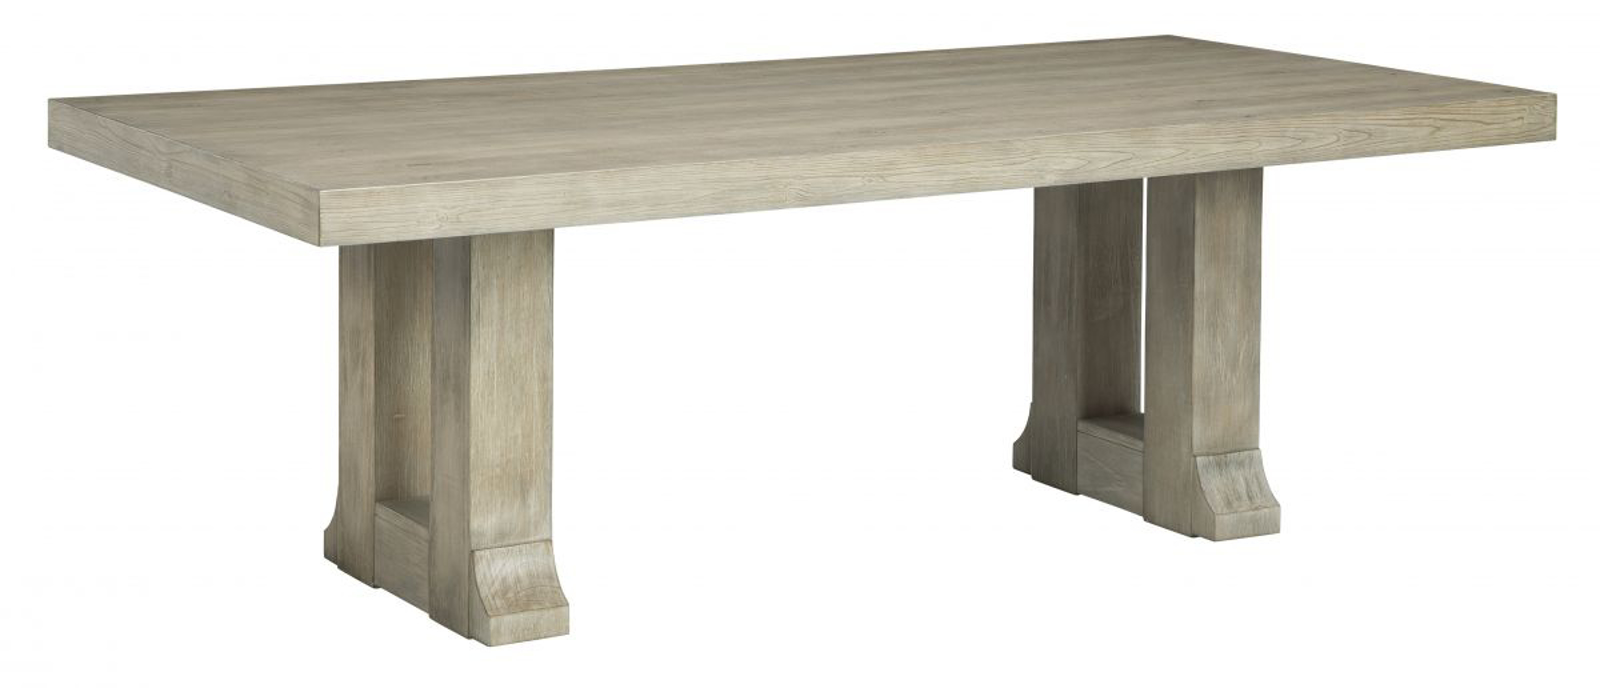 Picture of Hennington Dining Table